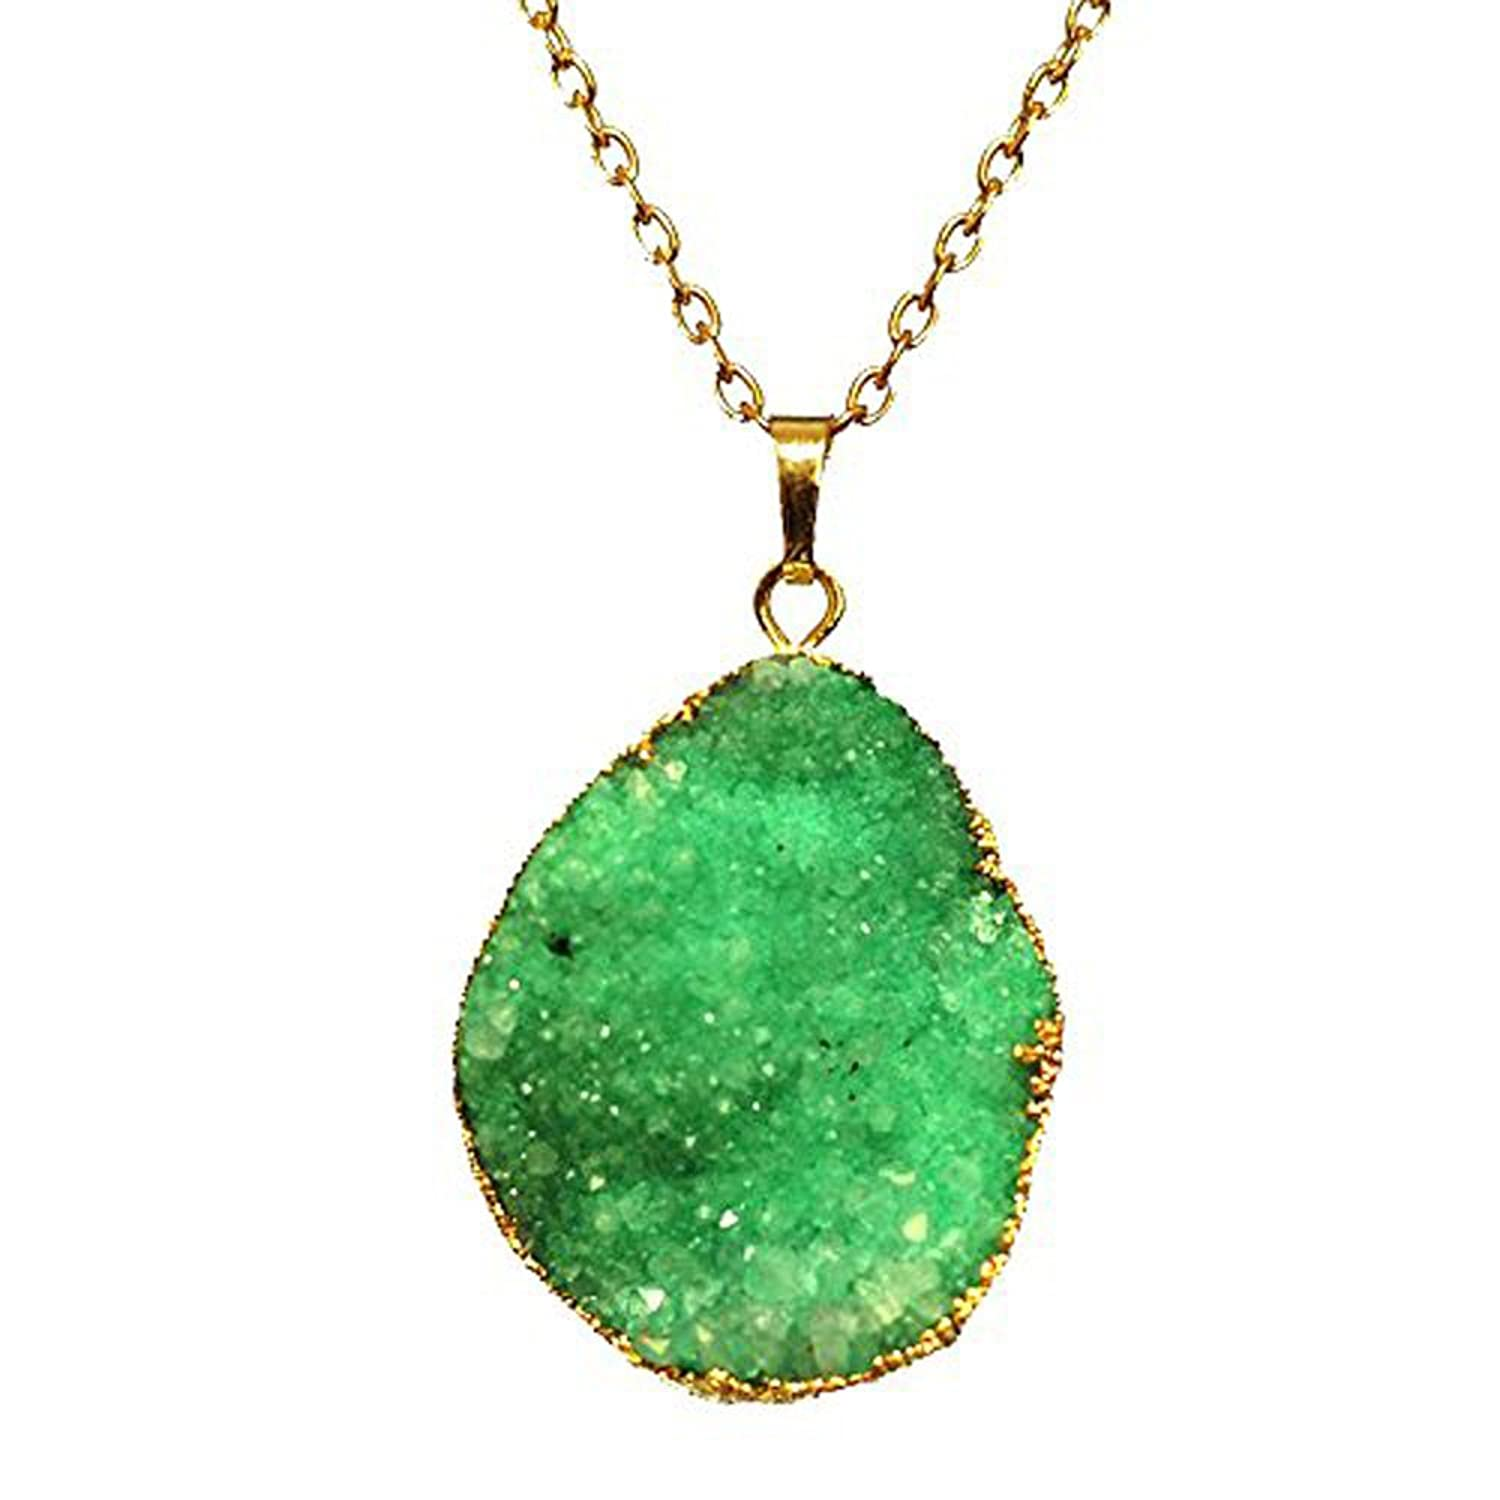 """022 NY6Design Energy Green Drusy Agate Pendant Gold Plated Chain Long Necklace 30-32"""" N16072806a"""